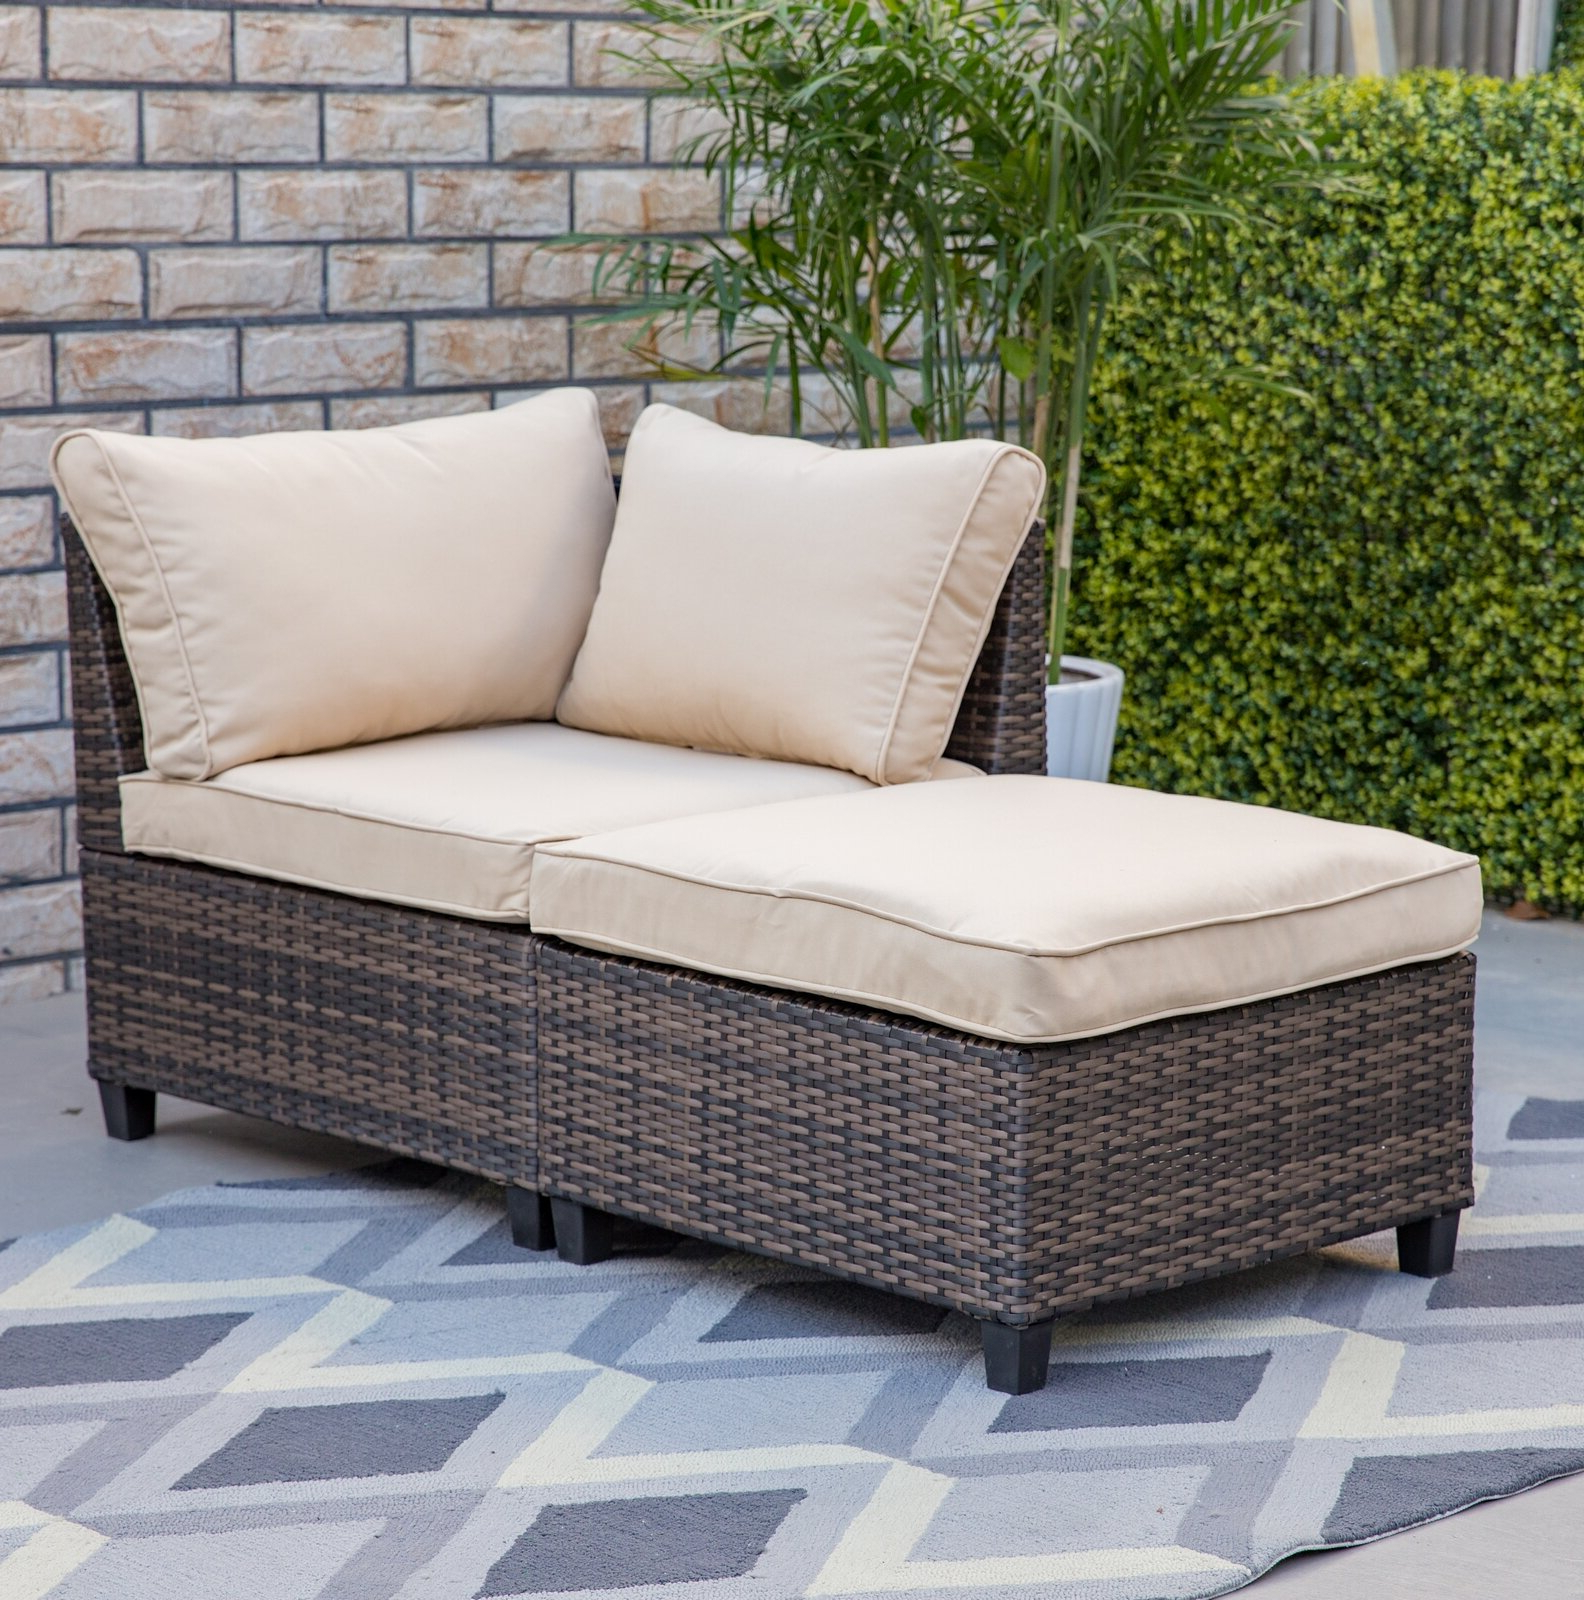 Boyce Outdoor Patio Sectionals With Cushions Within Most Recently Released Bafford 2 Piece Corner Chair And Ottoman (View 17 of 25)